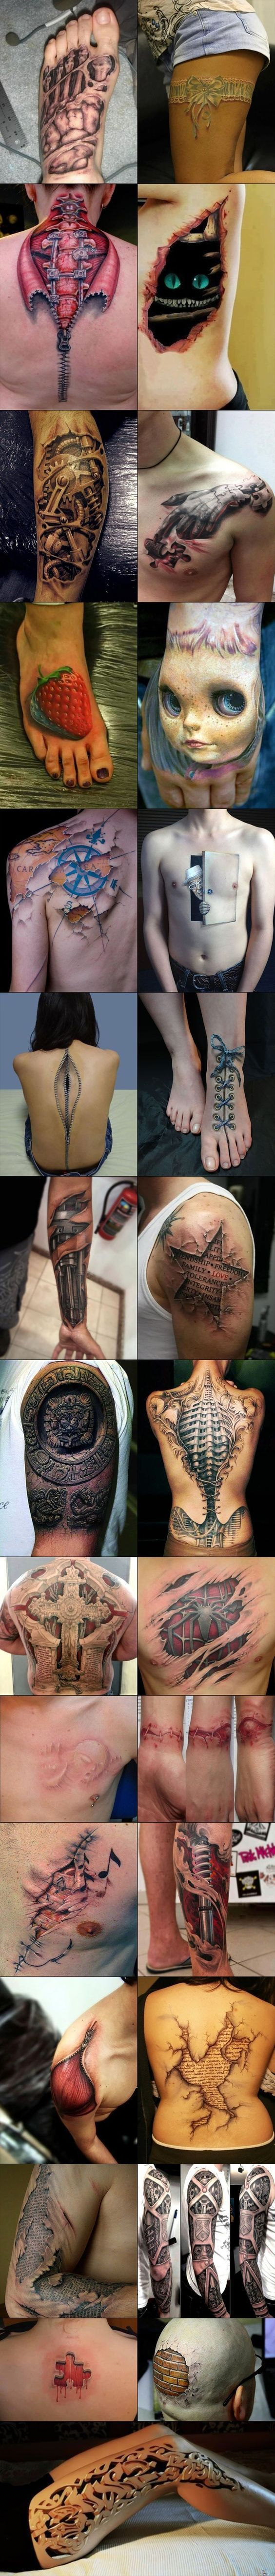 4021a2 italy tattoos designs - Just Love The Spine Tattoo